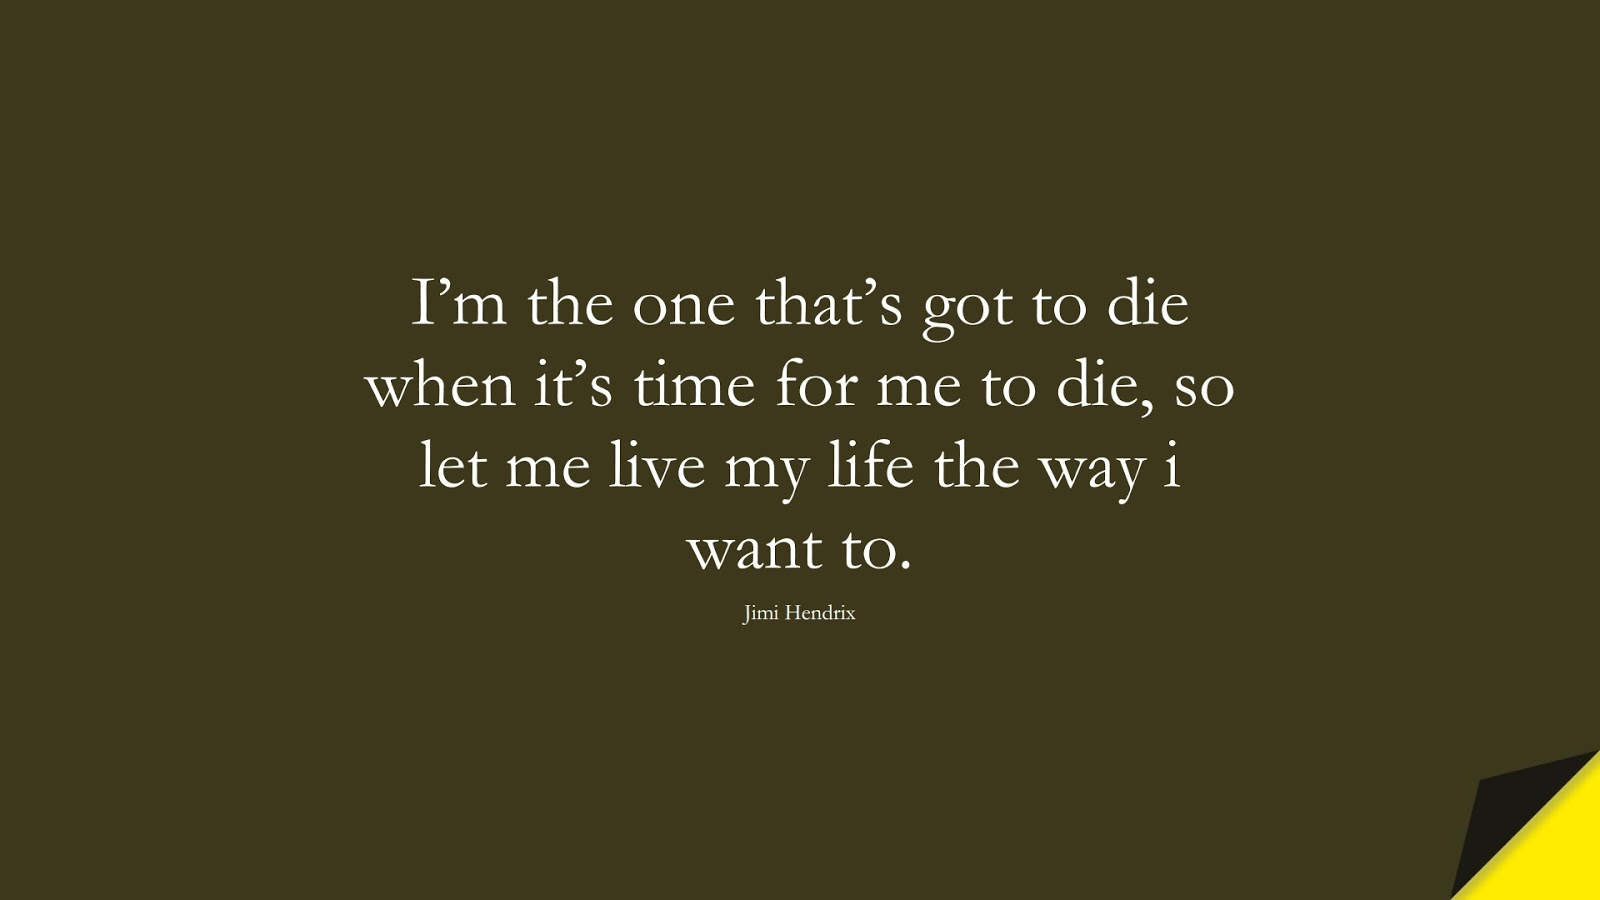 I'm the one that's got to die when it's time for me to die, so let me live my life the way i want to. (Jimi Hendrix);  #LifeQuotes